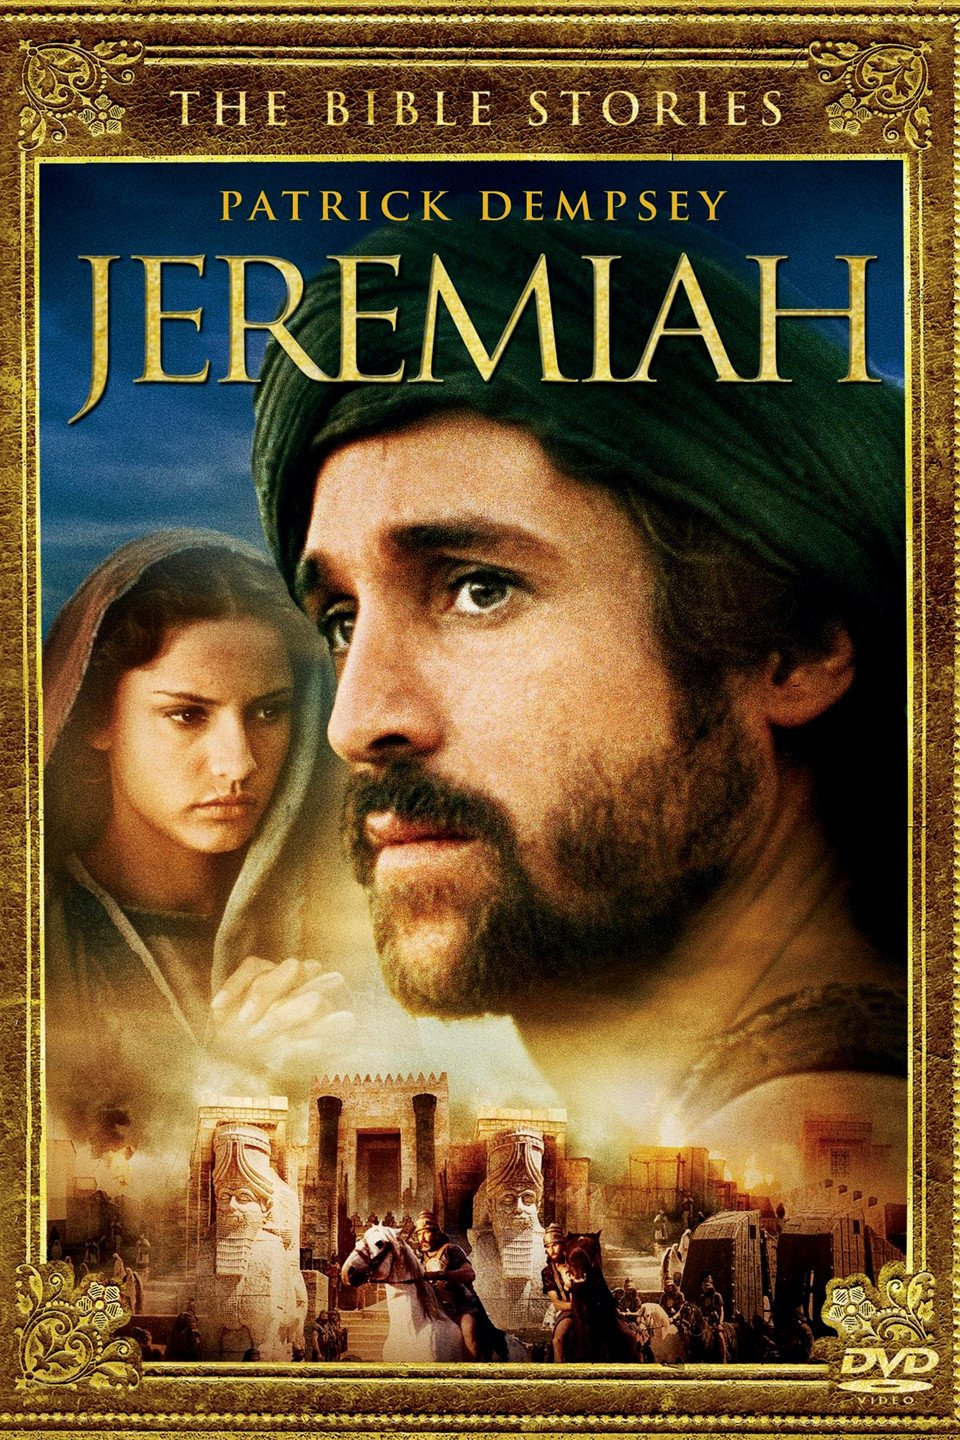 Jeremiah Movieguide Movie Reviews For Christians